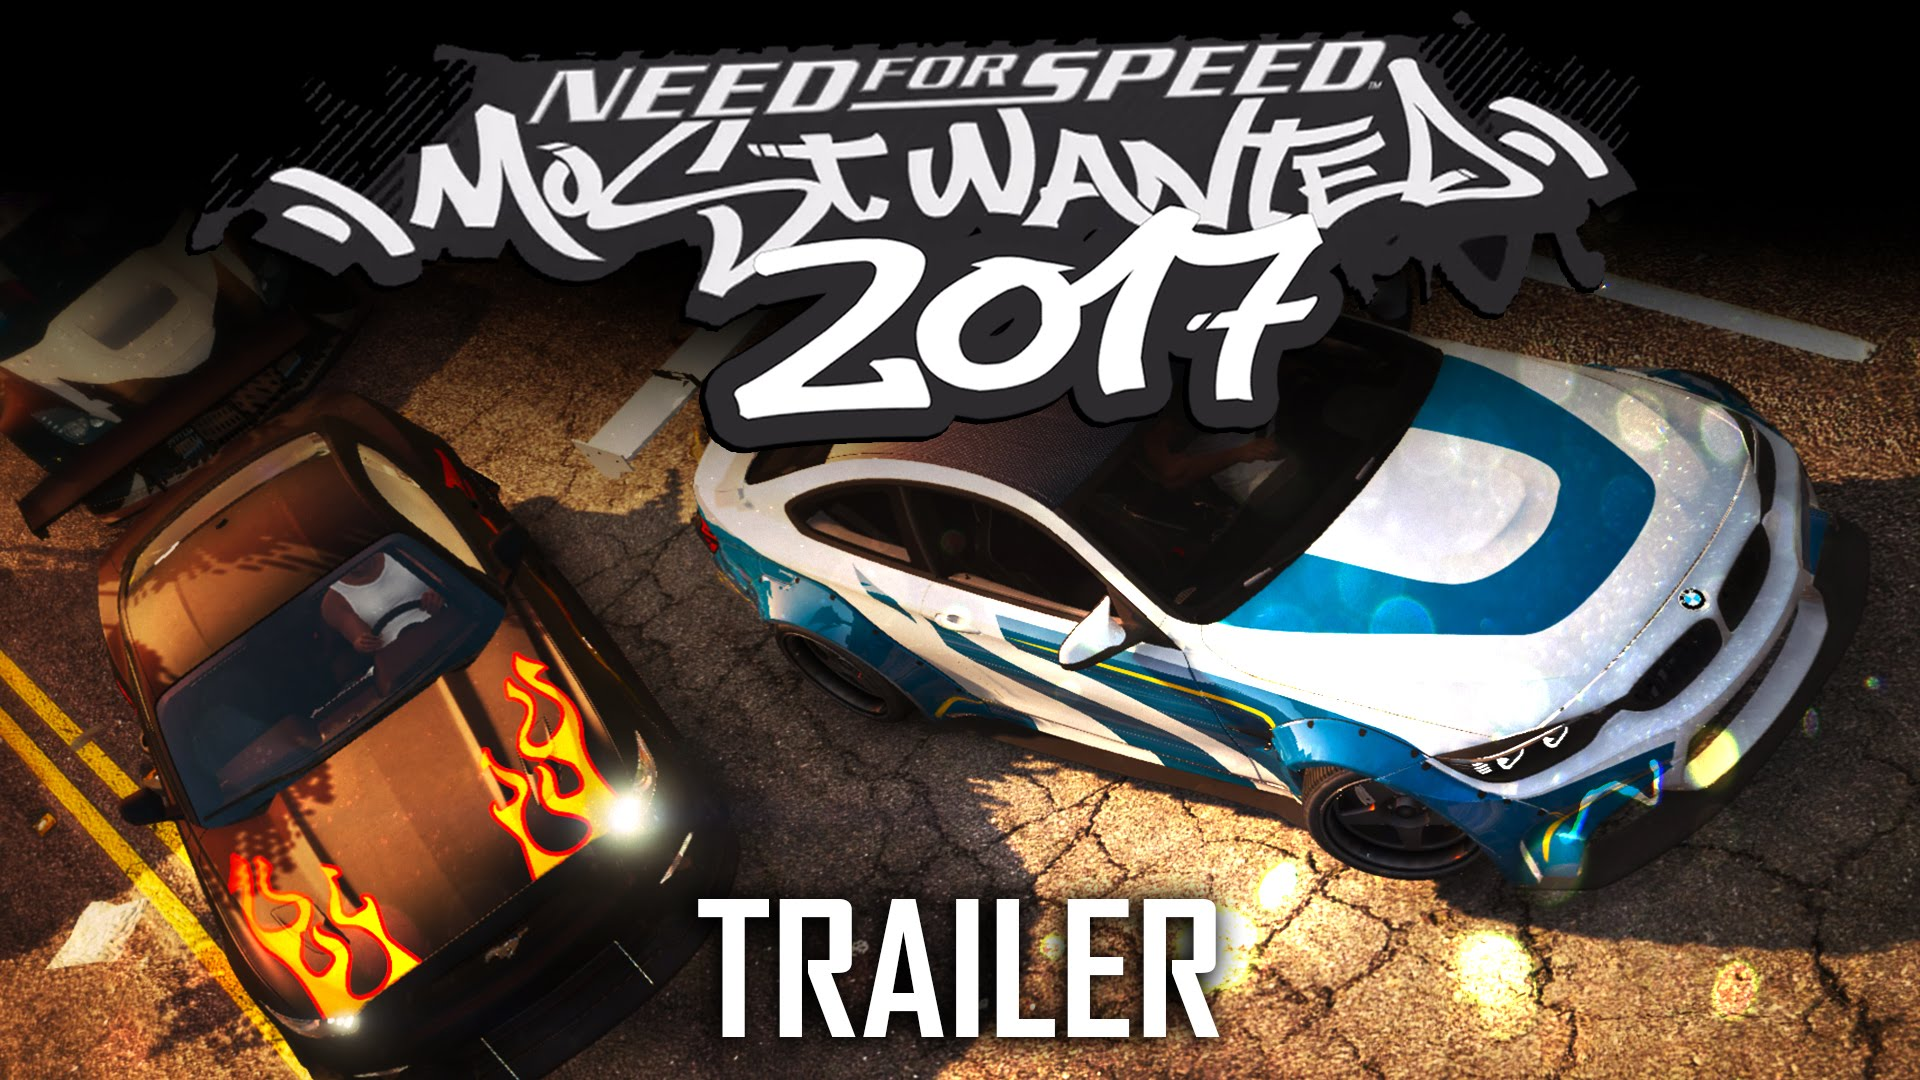 Need For Speed Most Wanted 2 Trailer 2016 Trailer Pc Ps4 Xbox